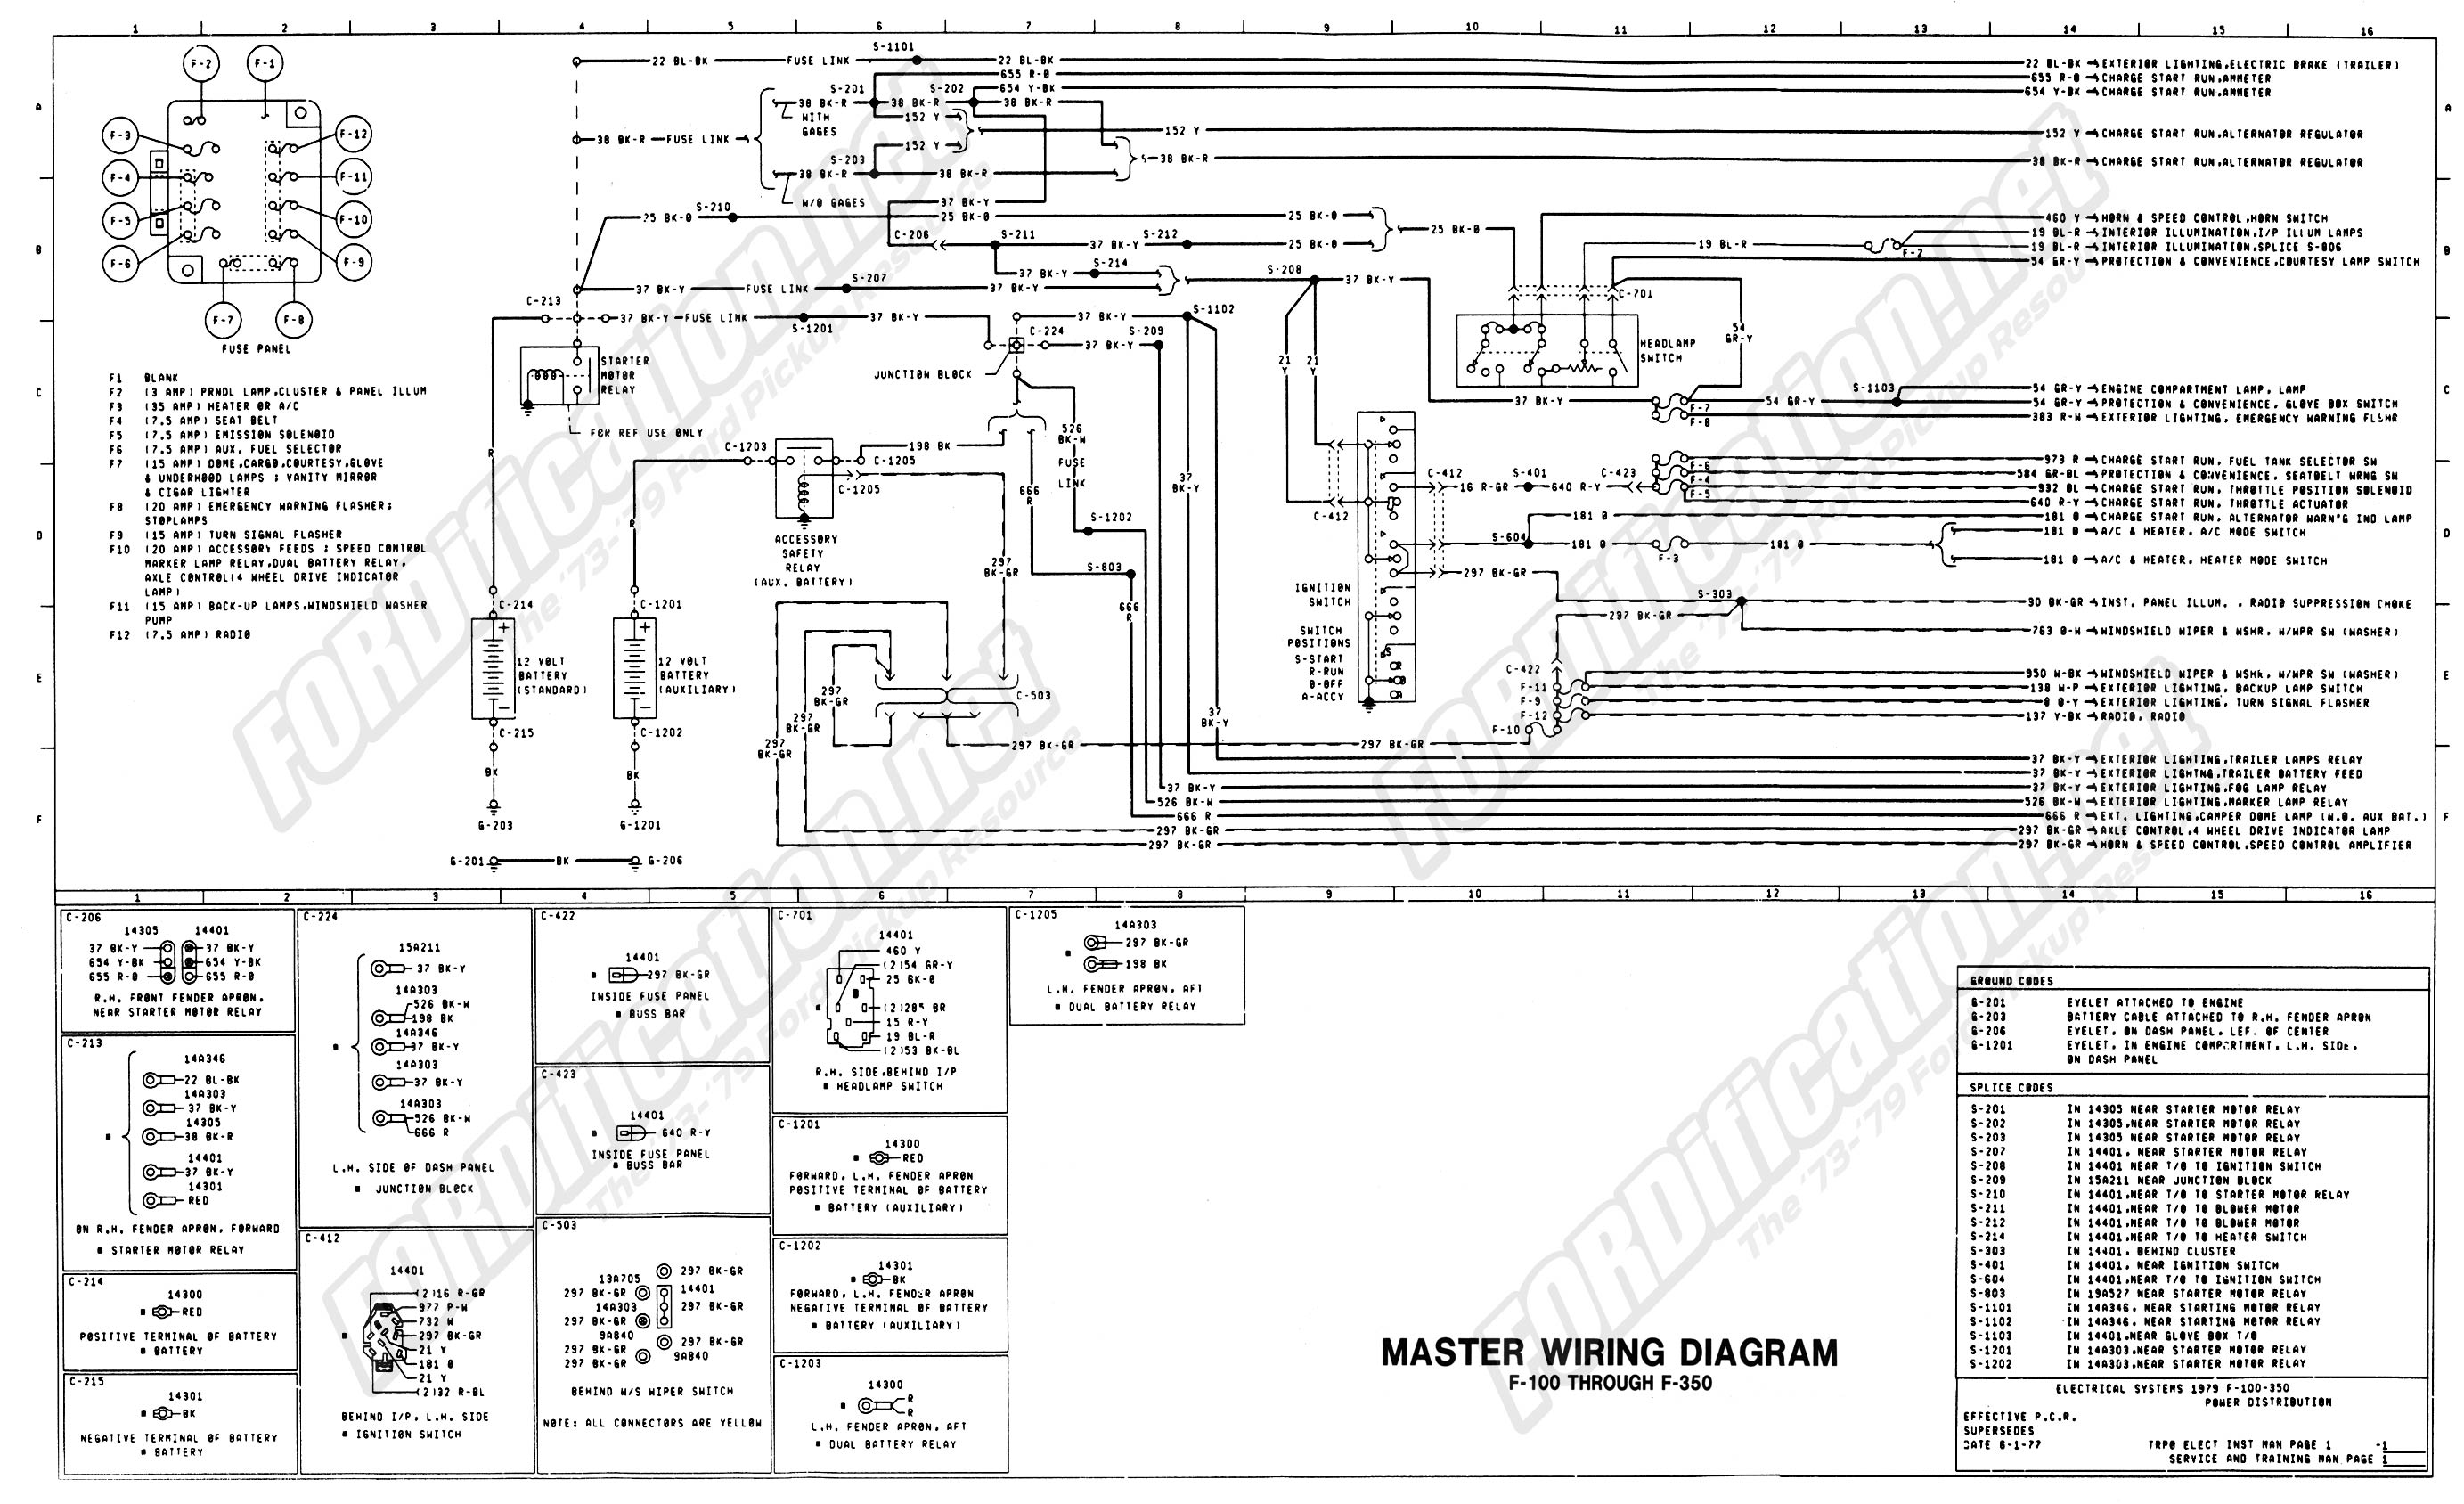 wiring_79master_1of9 1973 1979 ford truck wiring diagrams & schematics fordification net